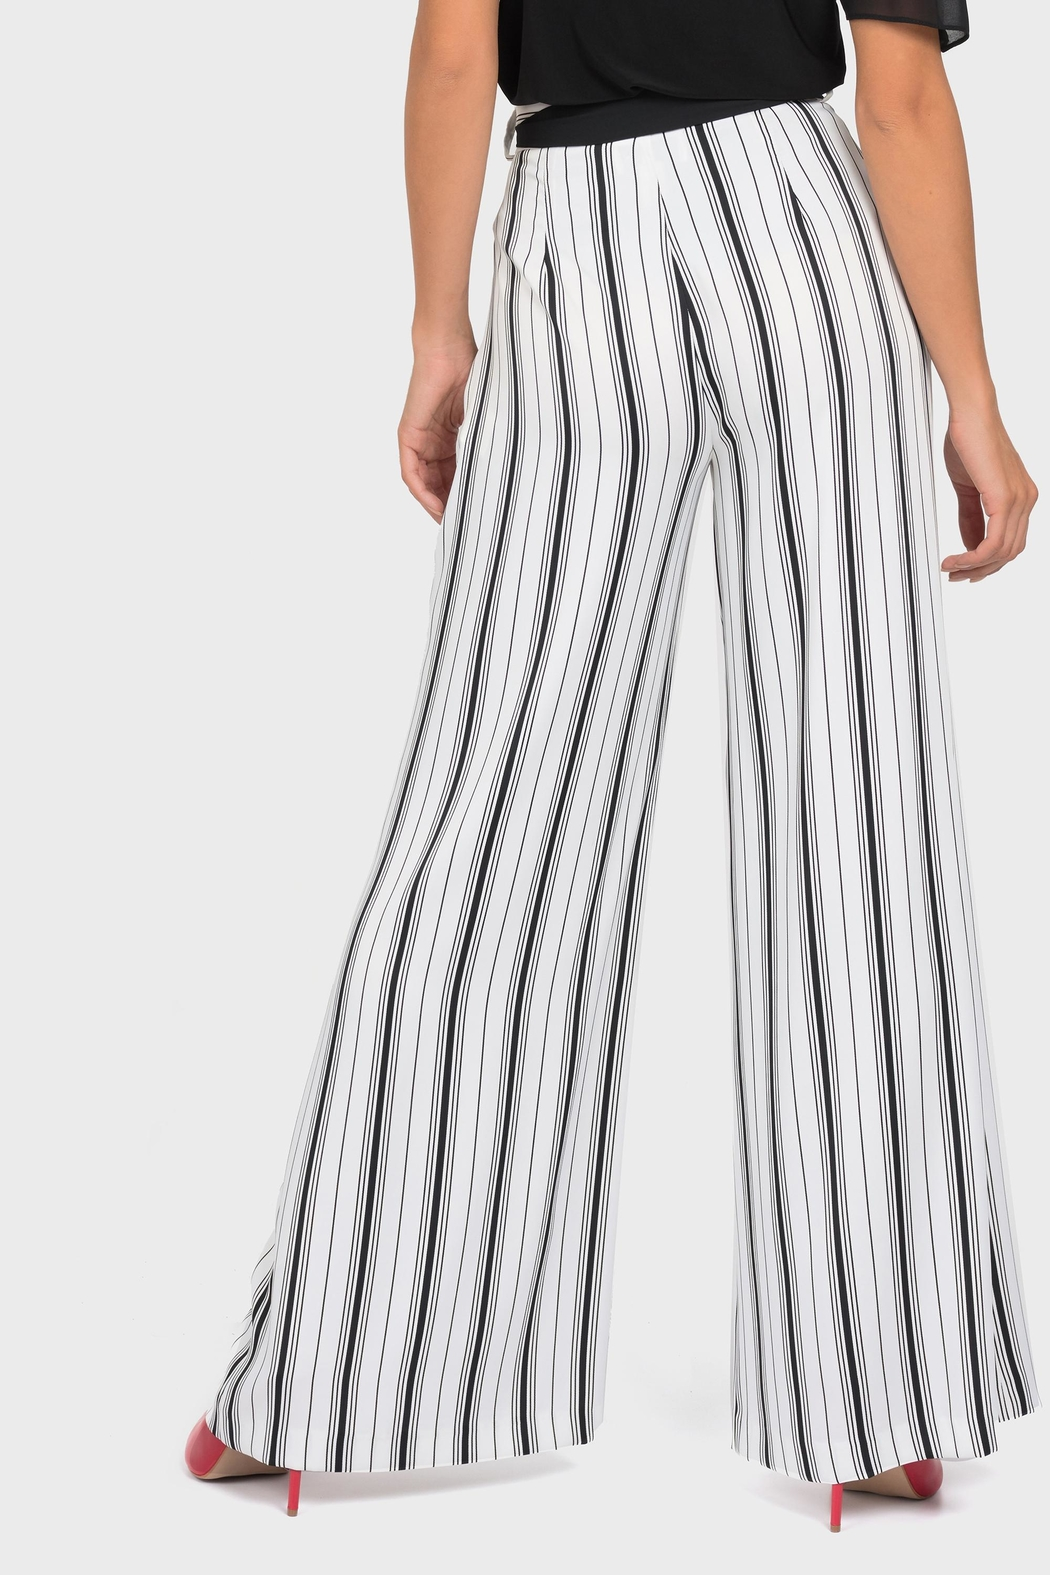 Joseph Ribkoff Belted Wide-Leg Pant - Side Cropped Image